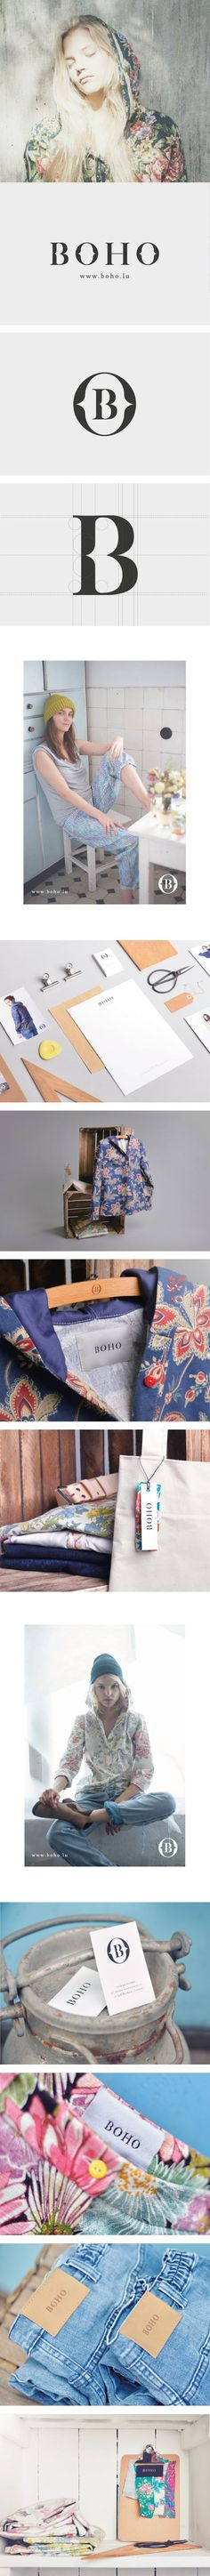 Boho Branding on Behance | Fivestar Branding – Design and Branding Agency & Inspiration Gallery